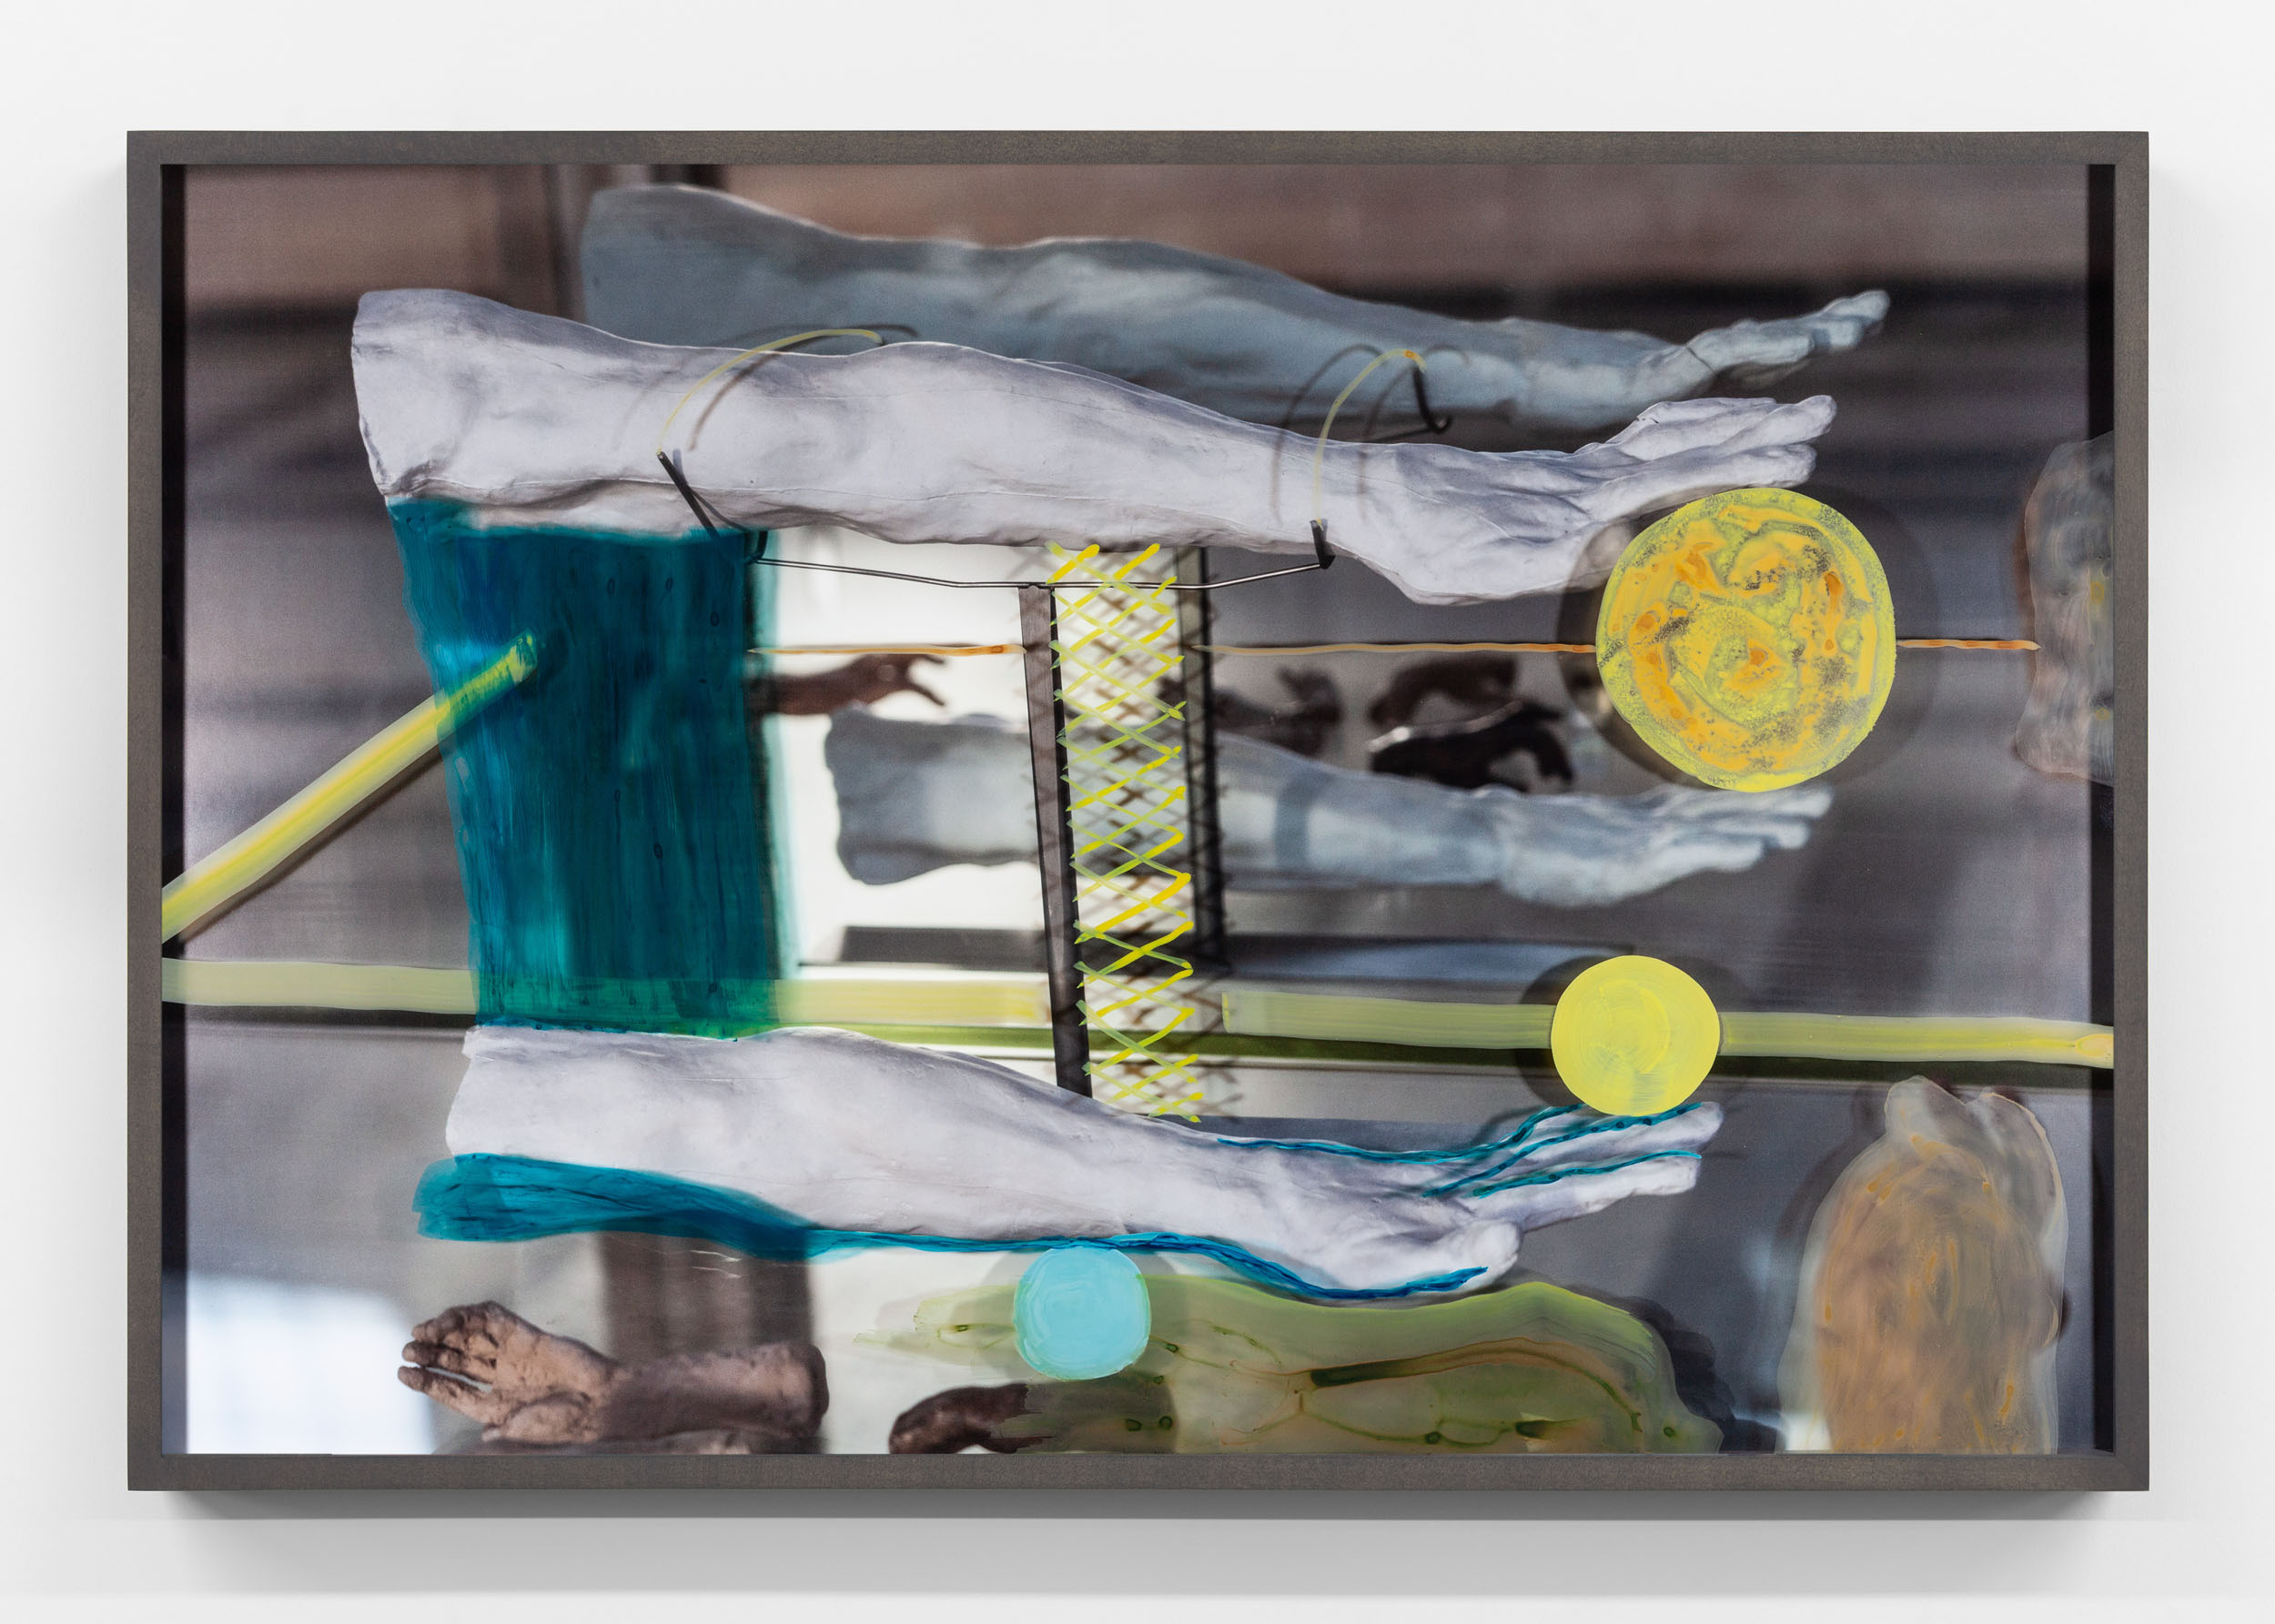 Untitled (Two arms in a mirror) 2019, hand-painted museum acrylic over archival pigment print 61 x 91.5 cm / 24 x 36 in. Unique work